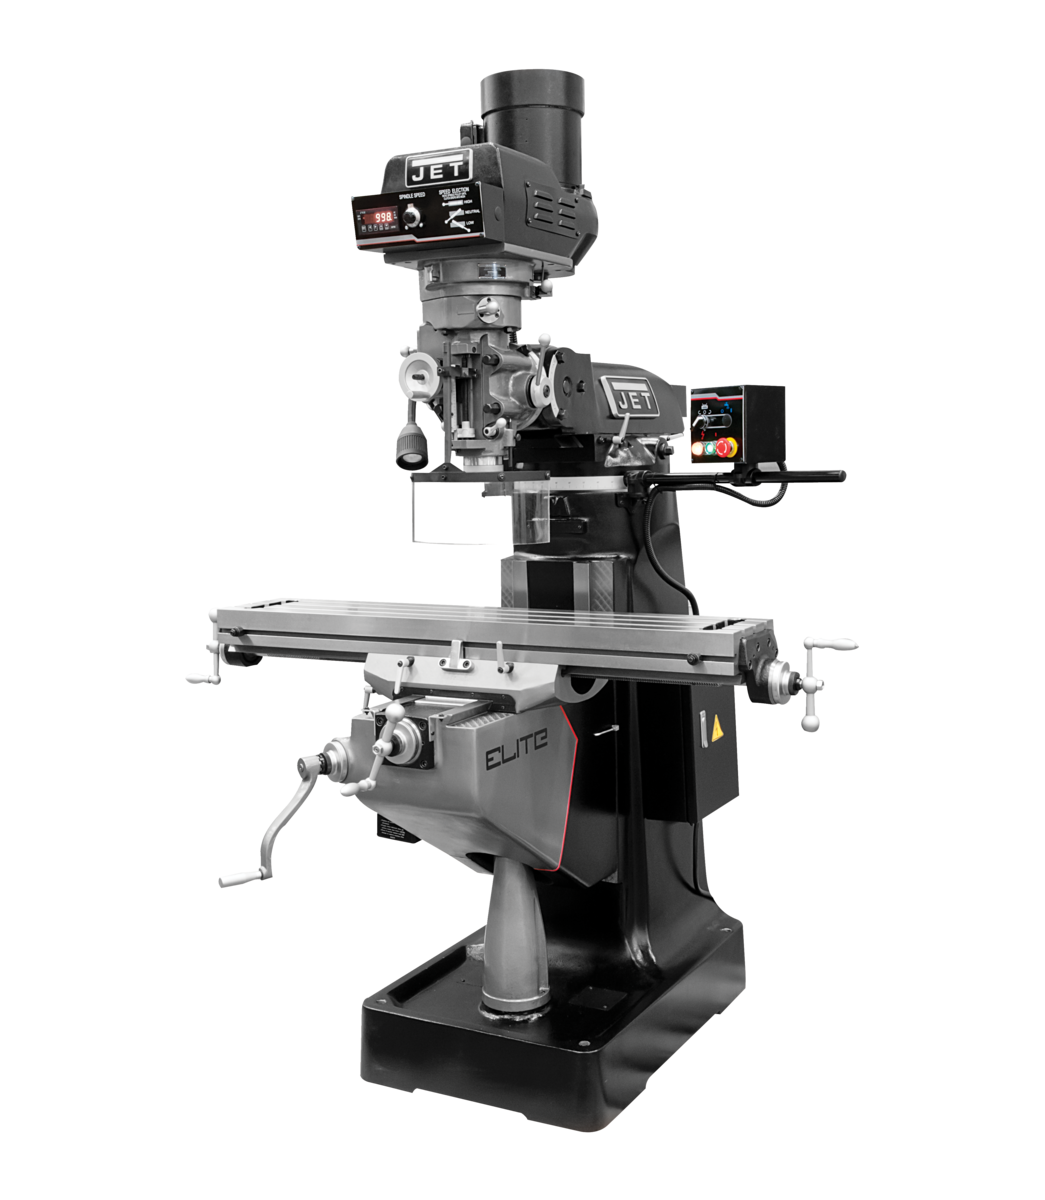 EVS-949 Mill with 3-Axis ACU-RITE 203 (Quill) DRO and X, Y, Z-Axis JET Powerfeeds